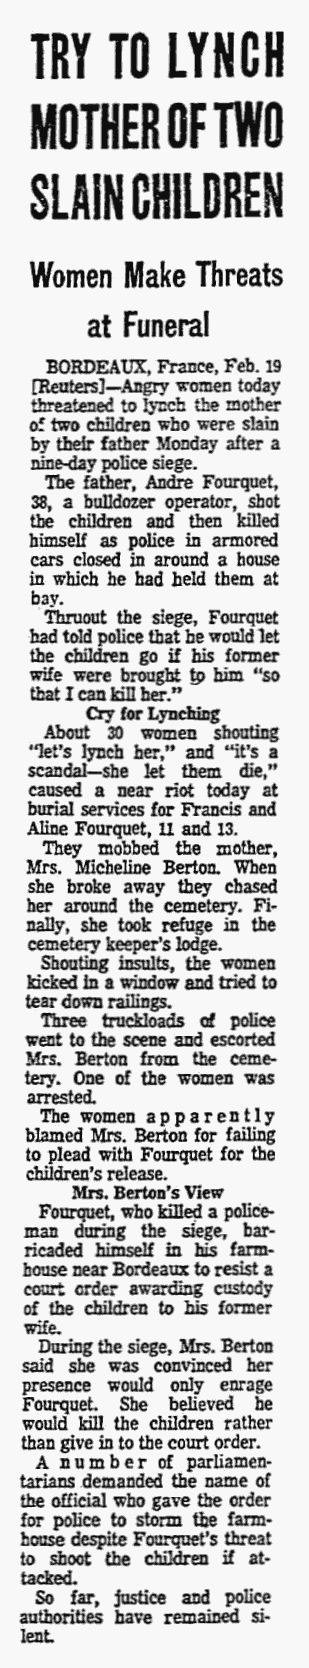 Chicago Tribune, nº 51, 20/02/1969, p. 2A-3